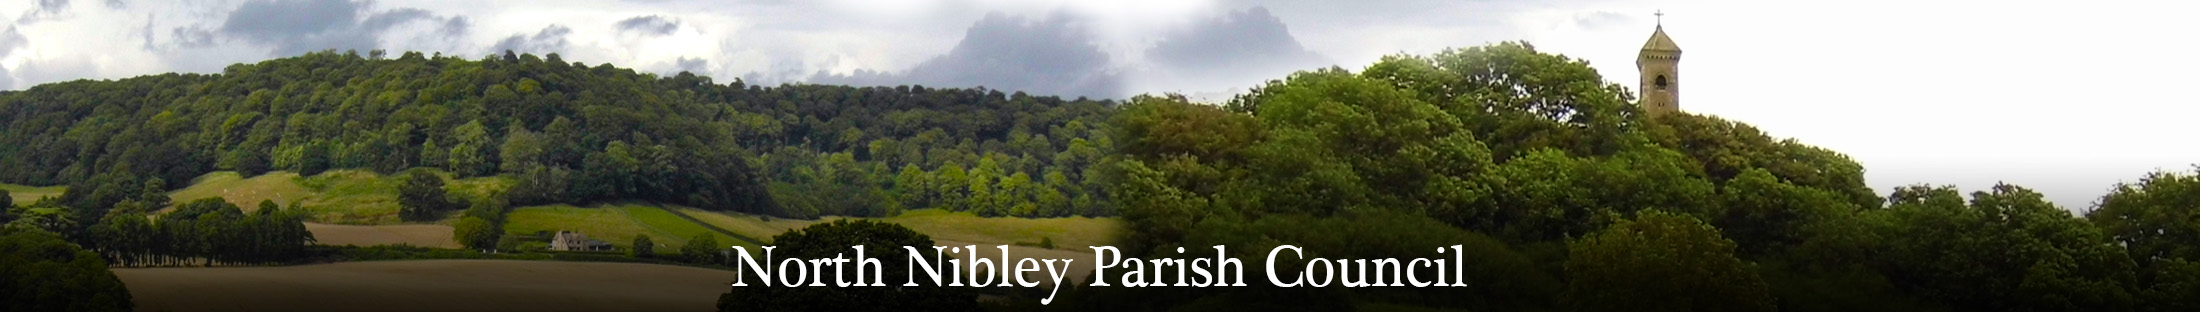 Header Image for North Nibley Parish Council